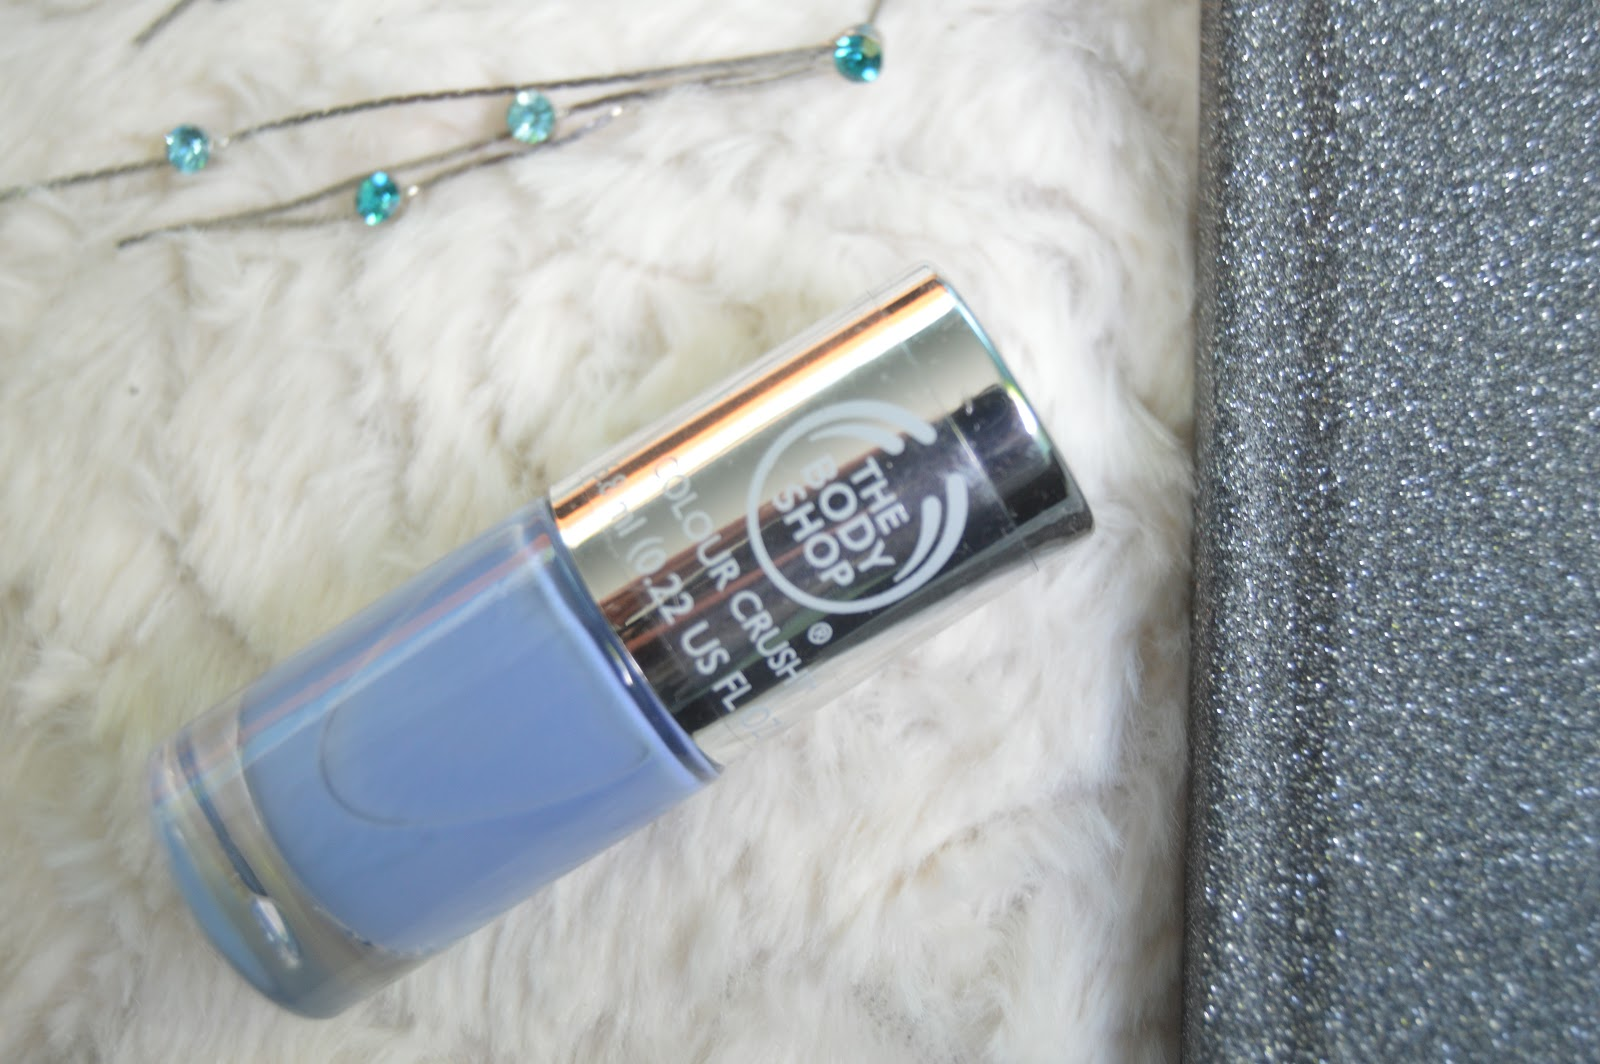 Verniz The Body Shop | Review | A Maiazita